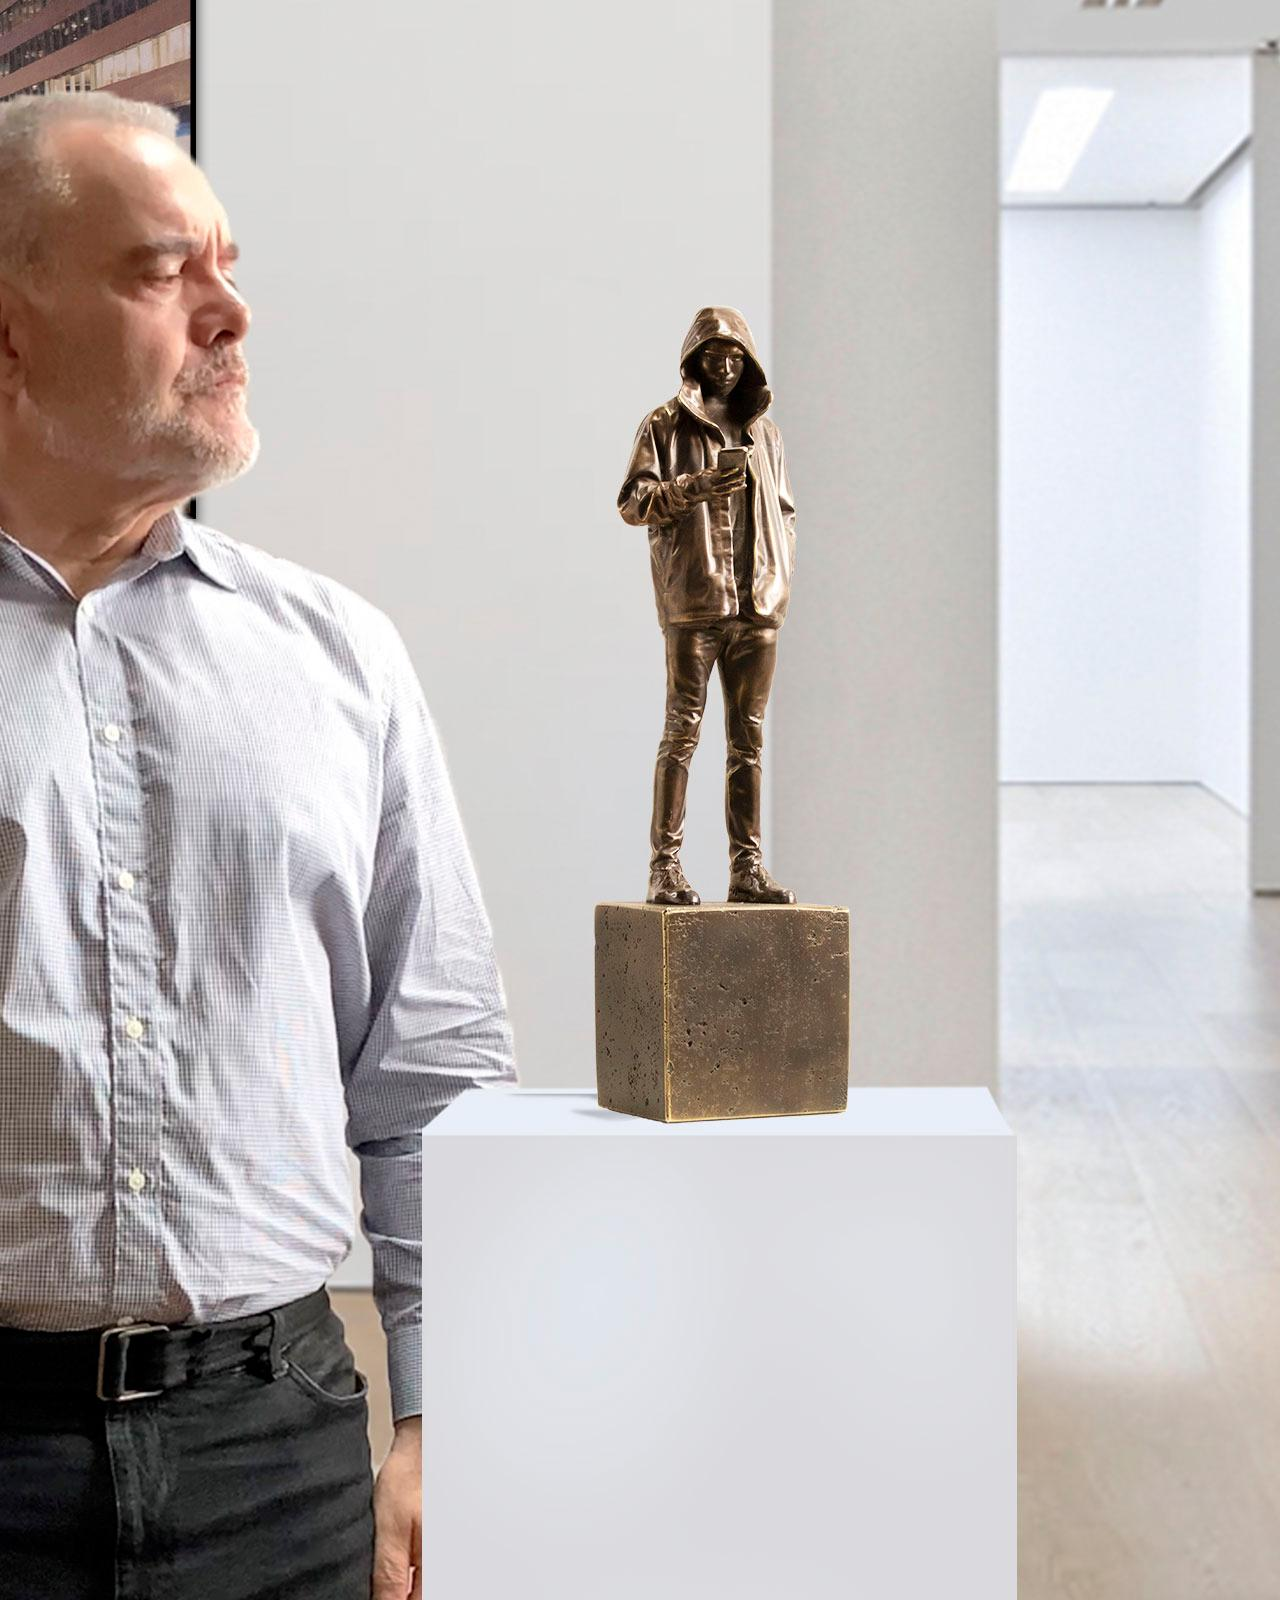 A moment of reality - Miguel Guía Realist Bronze layer Sculpture